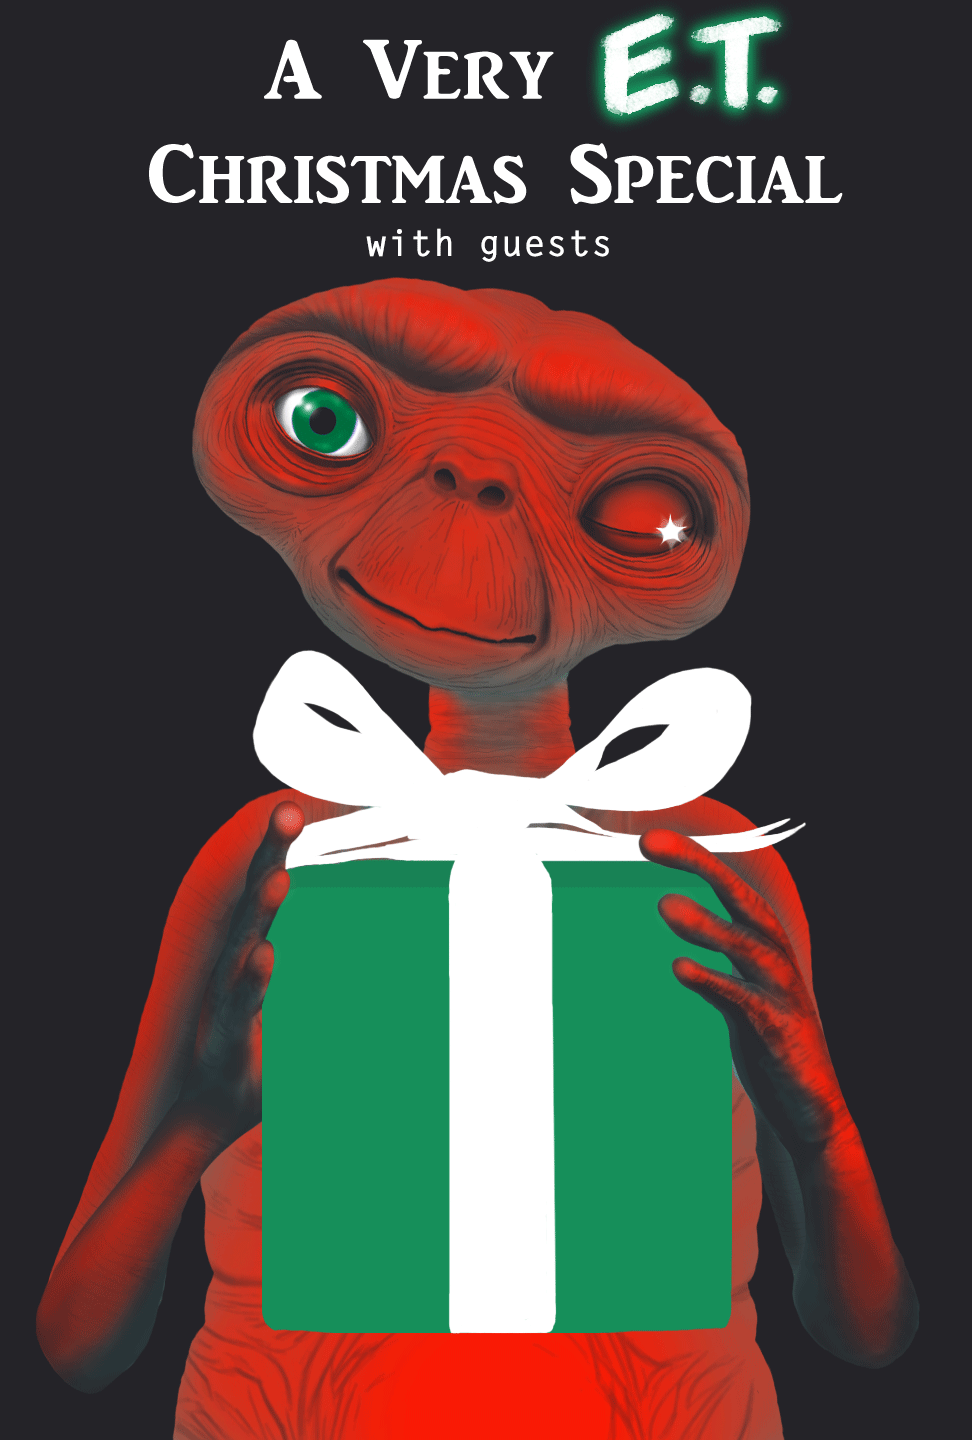 christmasspecial2_poster.png